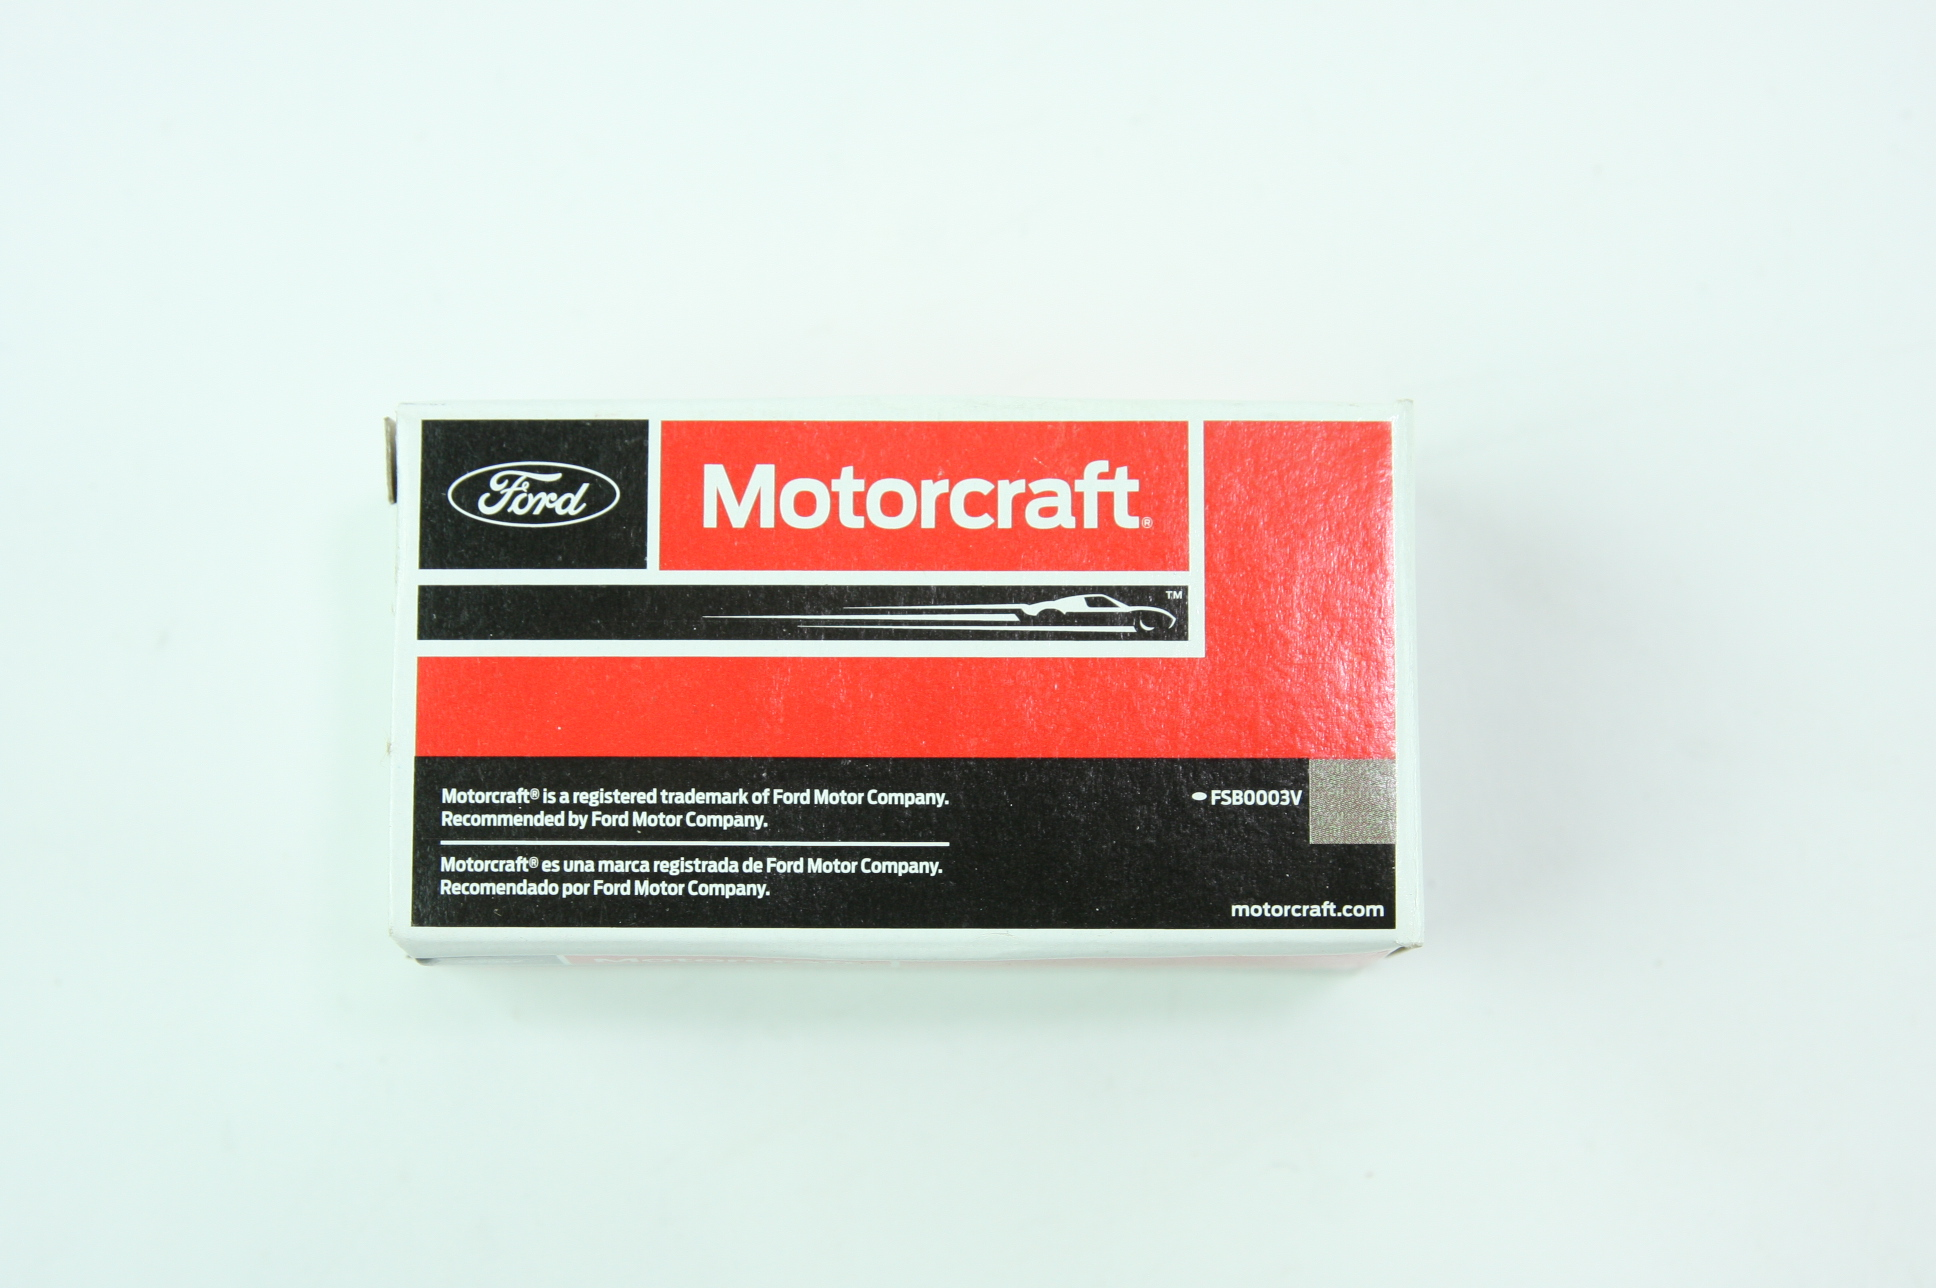 New Genuine OEM Motorcraft SW-5854 Door Open Warning Sensor Ford XF2Z14018AD - image 3